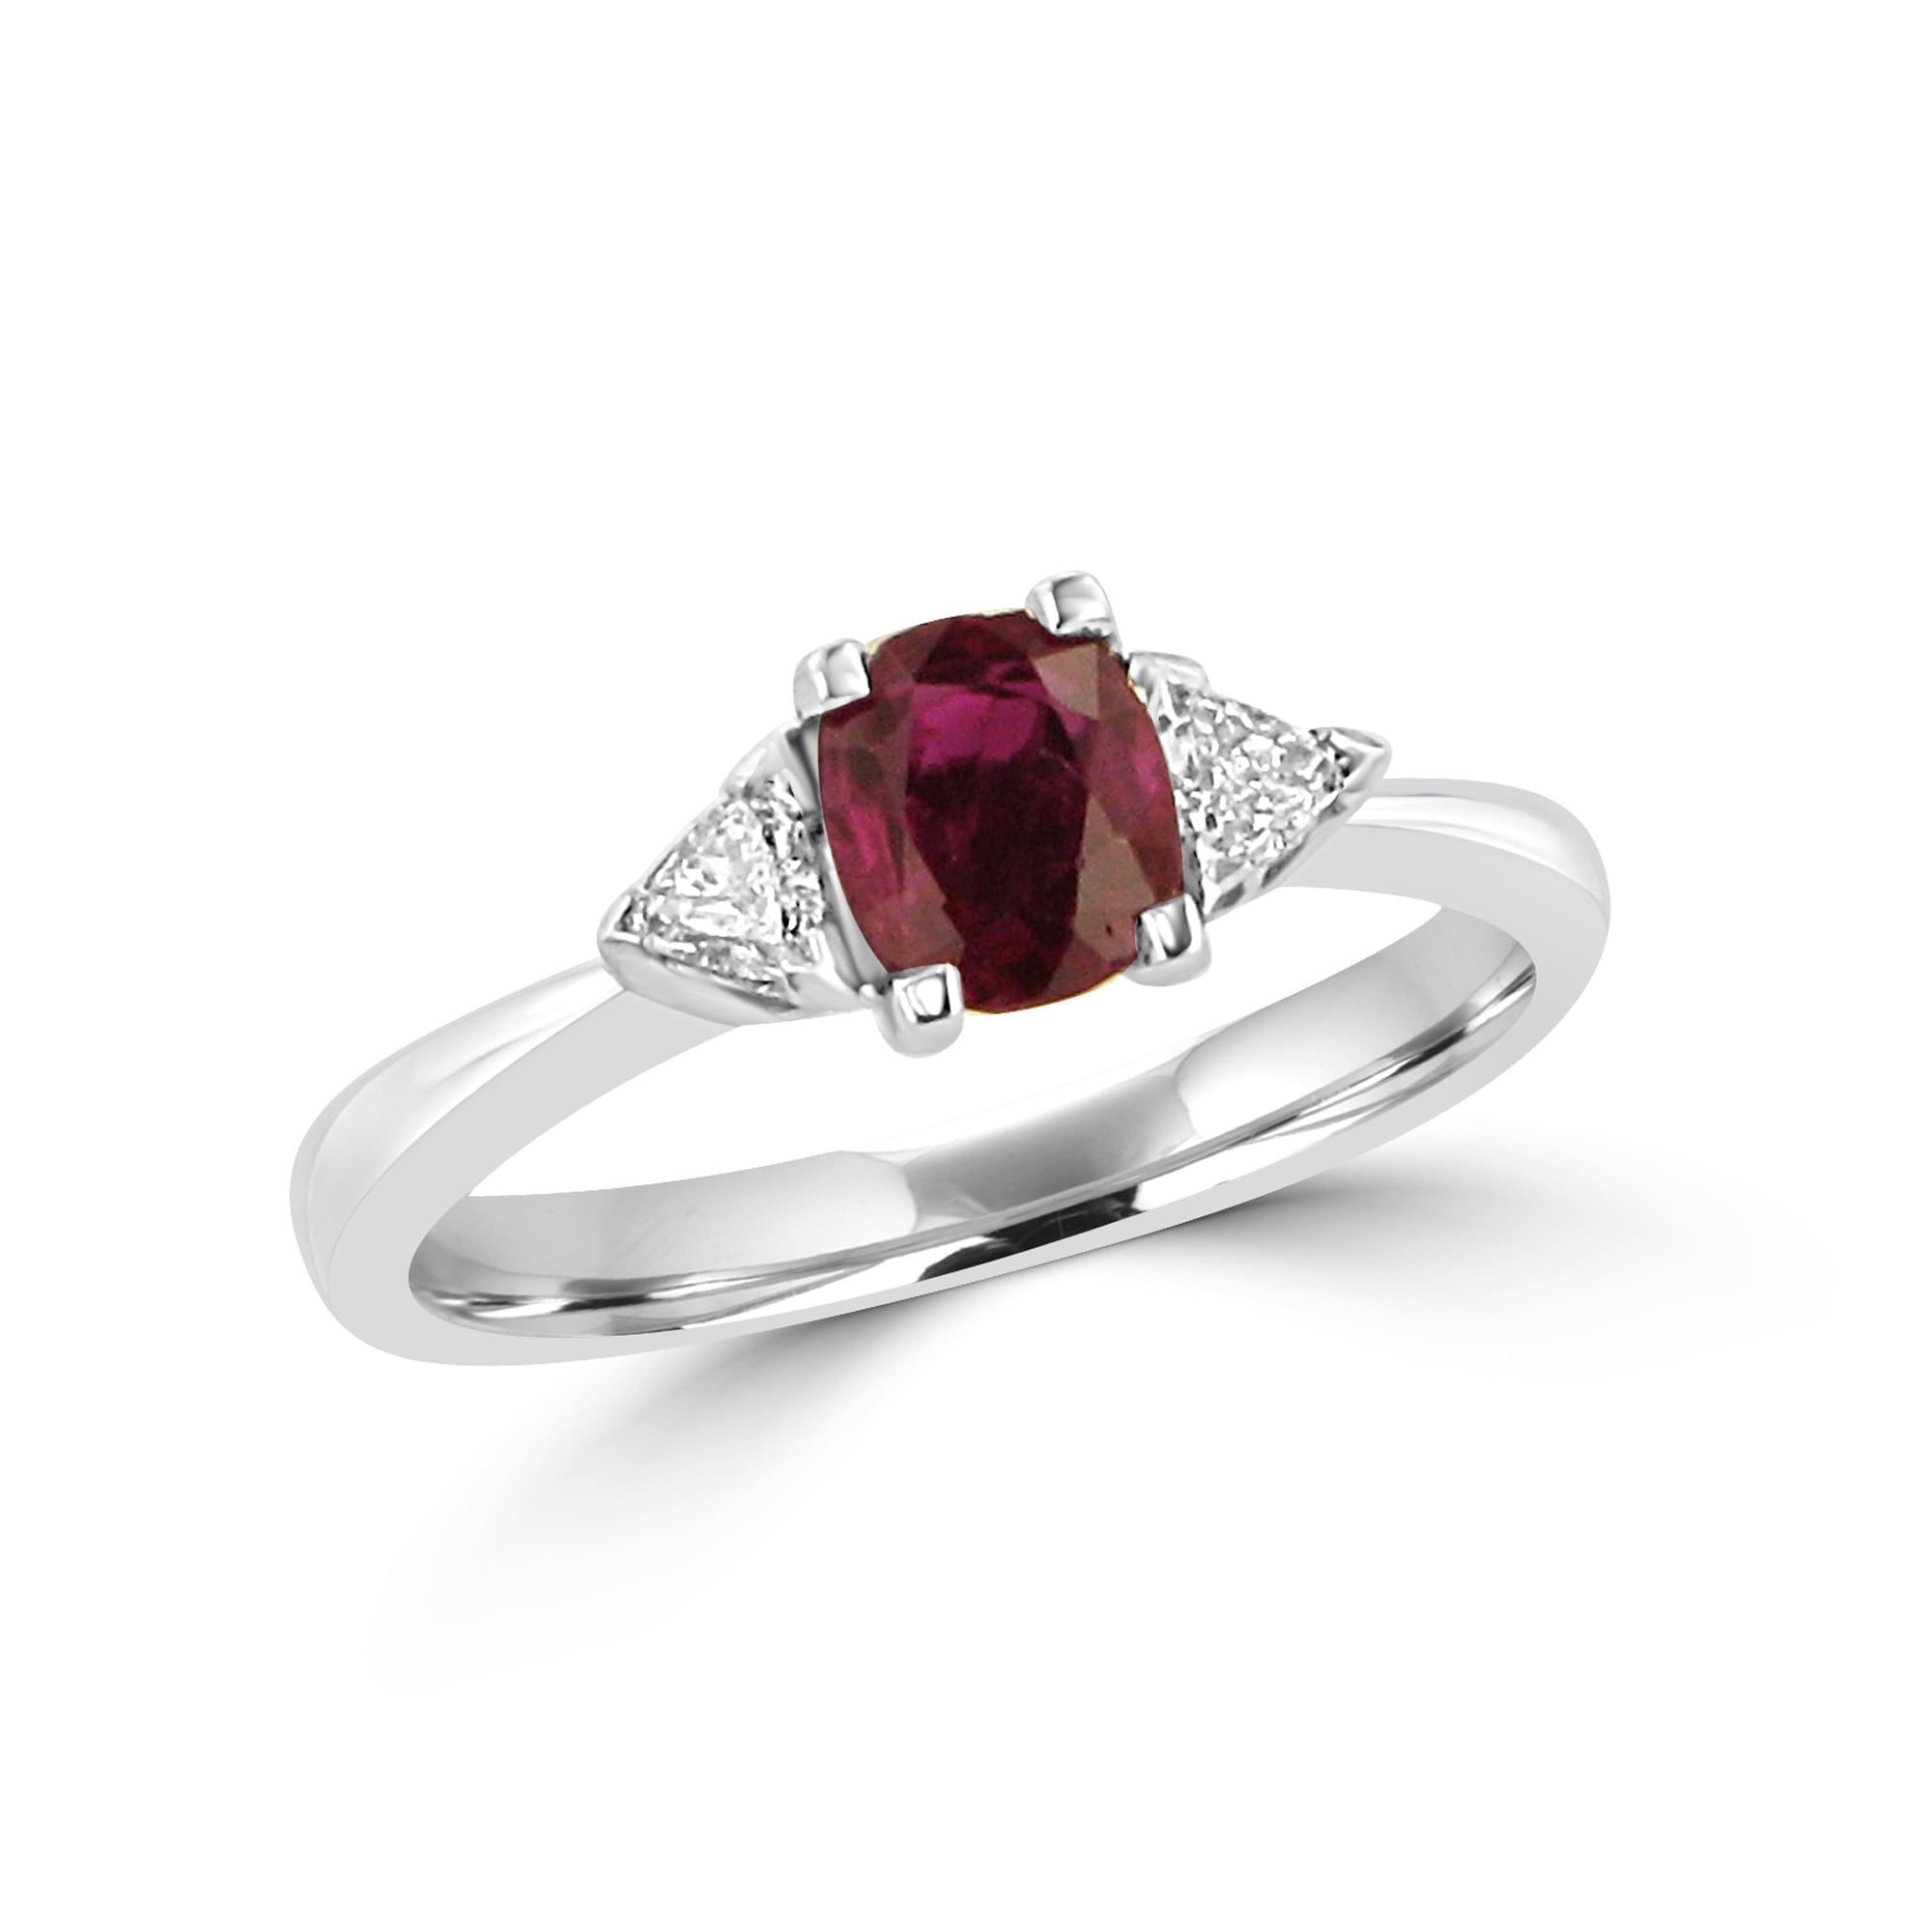 dsf antique diamond jewelry rings ruby band engagement